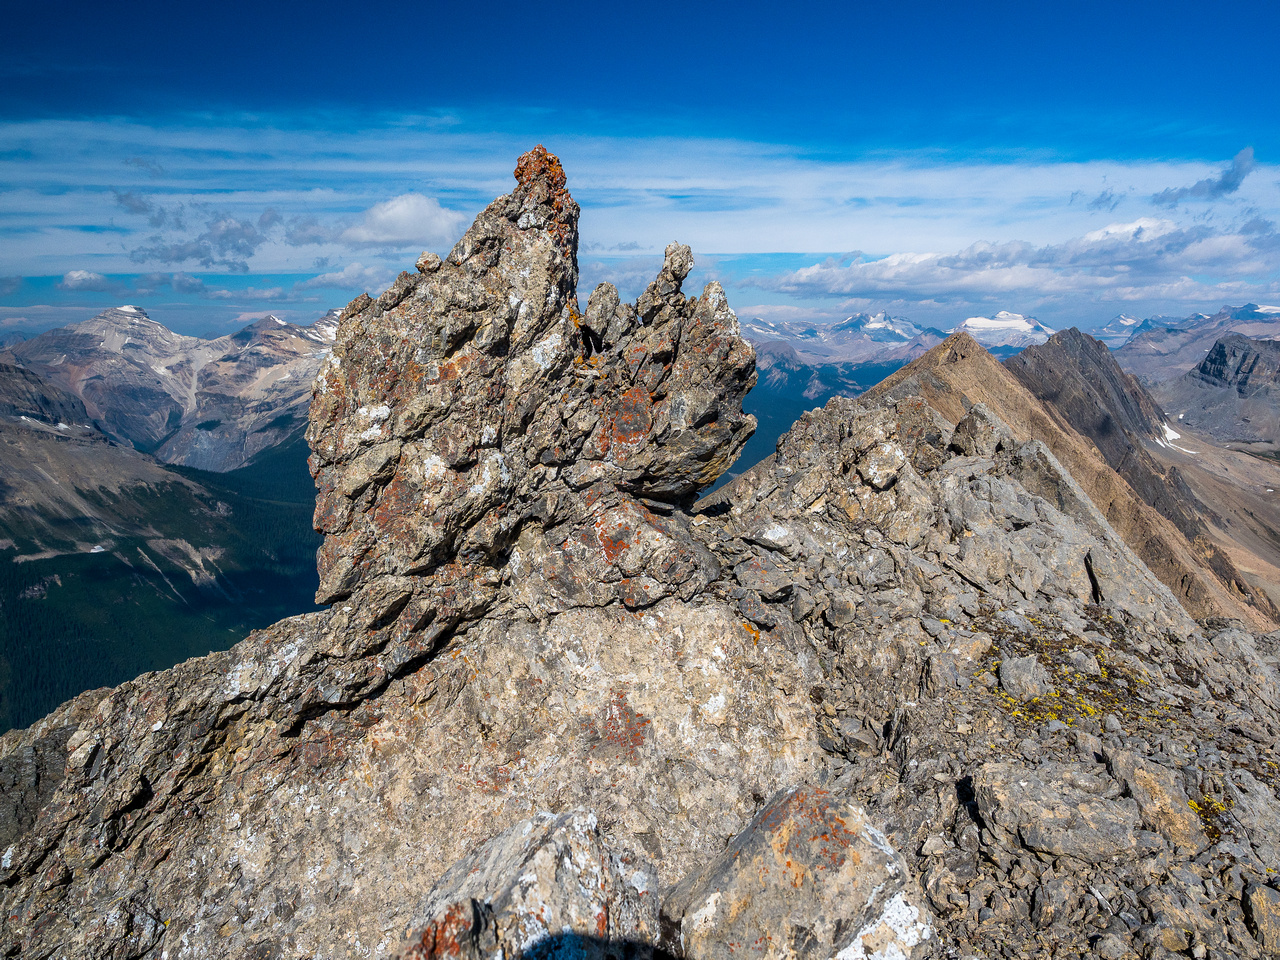 This is the pinnacle / boulder that is visible on top of the crux.